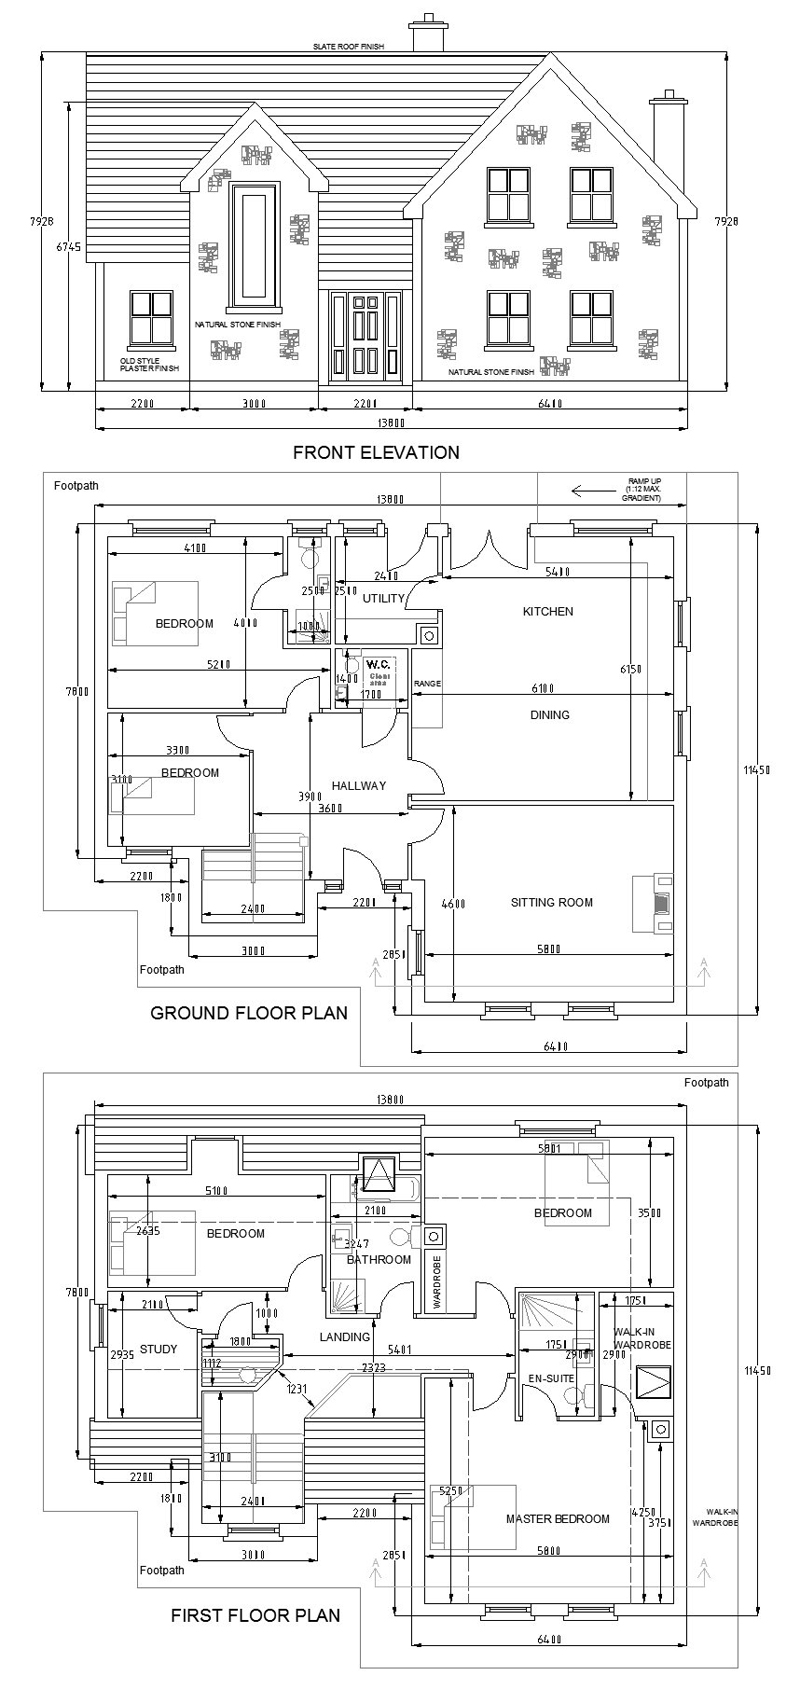 buy house plans bungalows storey and a half two storey 201b once your order is received your plans will be posted to your address in 2 weeks all prices include vat delivery